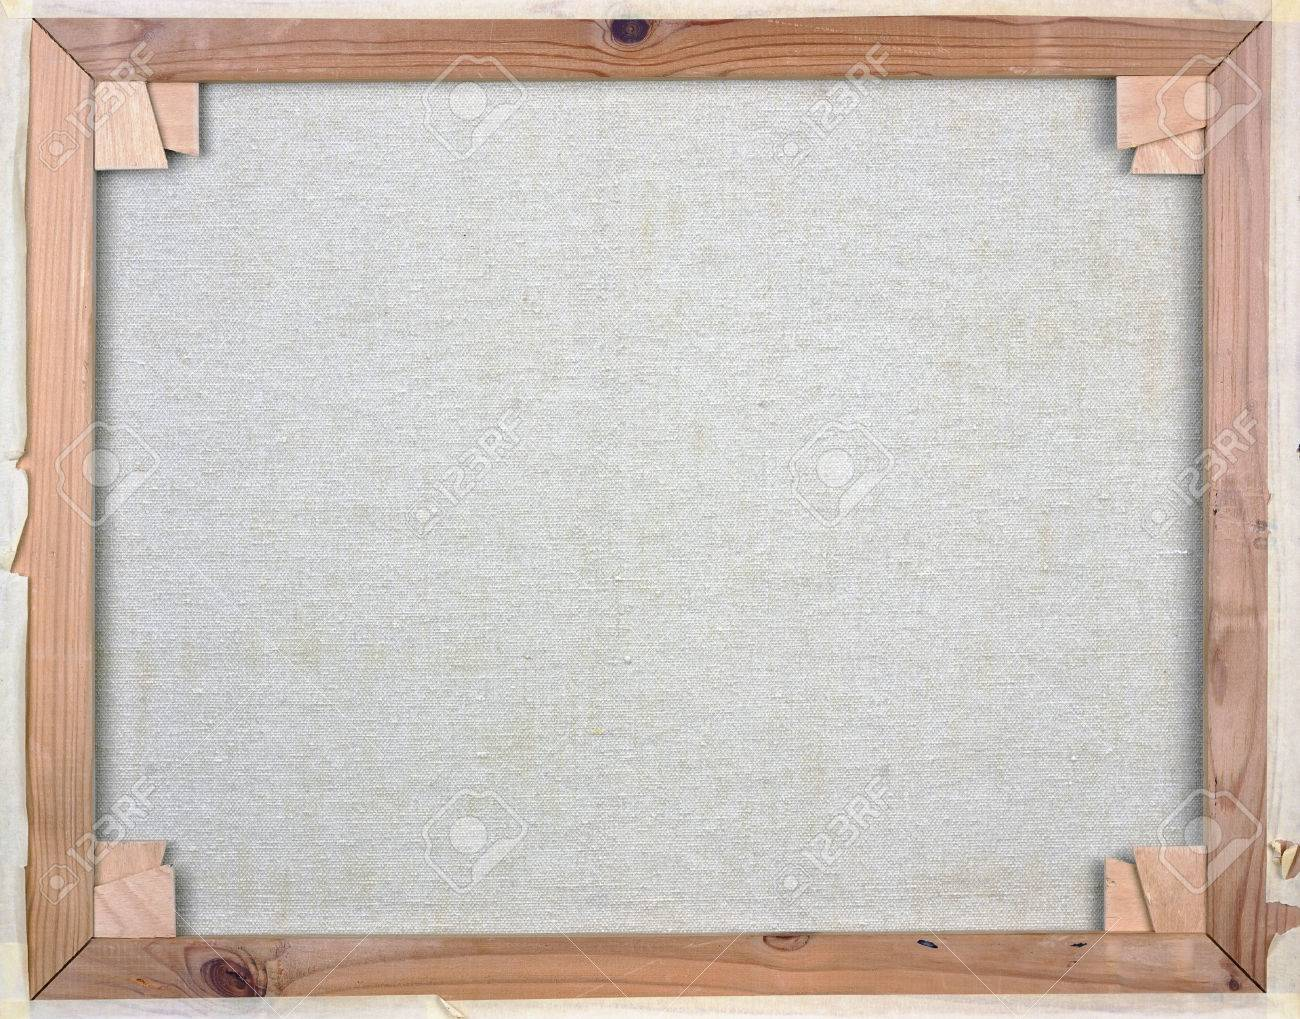 White Canvas On A Pine Wooden Frame Back Side View Stock Photo ...